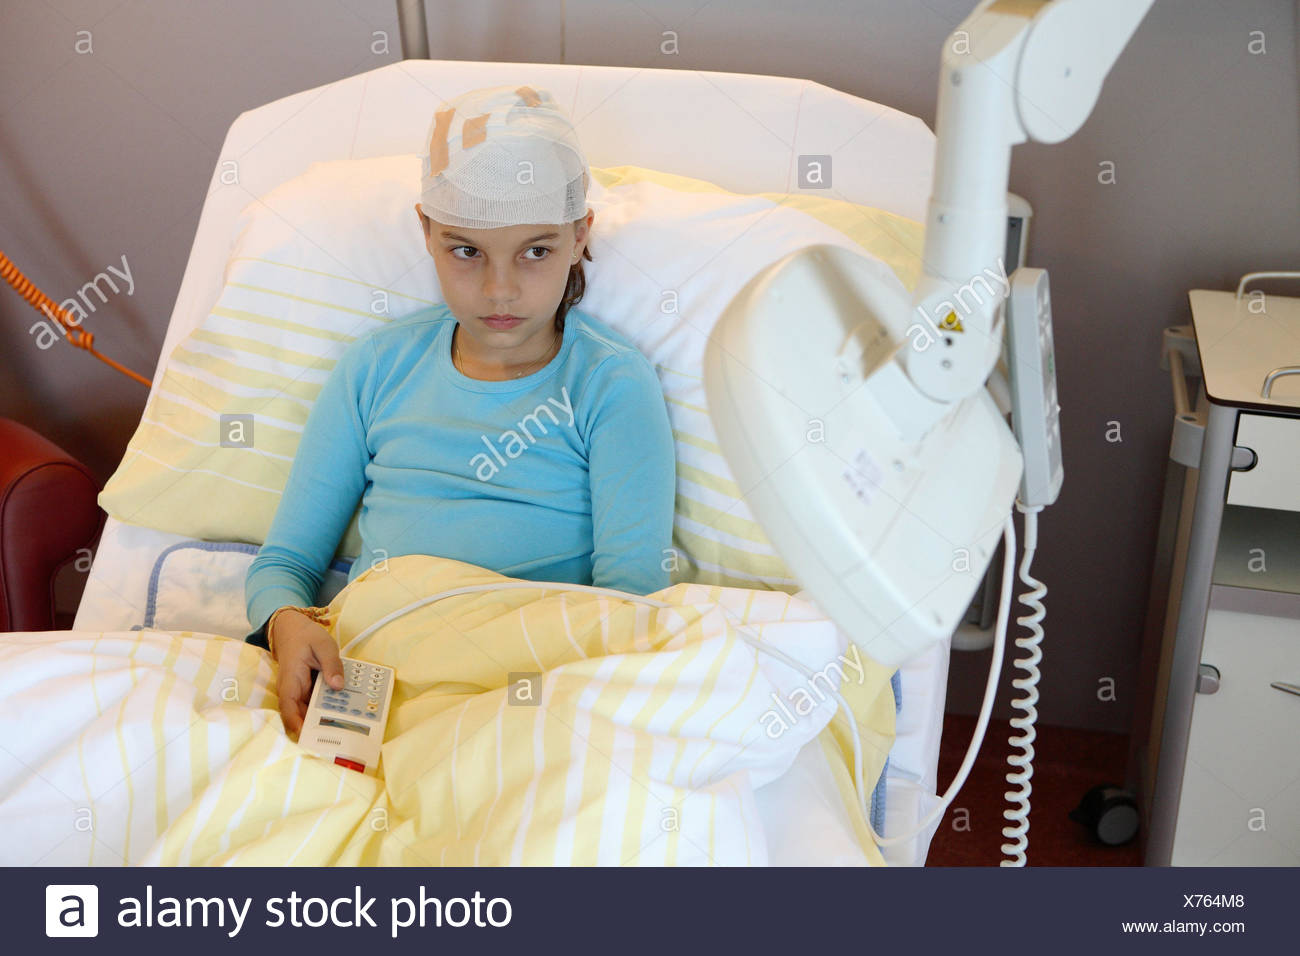 Clinic, ward, patient, girl, injures, head, online, watch TV, seriously, sadly, hospitalisation, sick person's station, pediatric clinic, children's ward, sickbed, person, child, only, lie, sit, ill, fixed up, association, head association, head injury, injury, pains, thoughtfully, loneliness, boredom, deflection, courageously, convalescense, healing, TV, swivelling, swivel arm, Fernbedinung, childhood, medicine, inside, - Stock Image